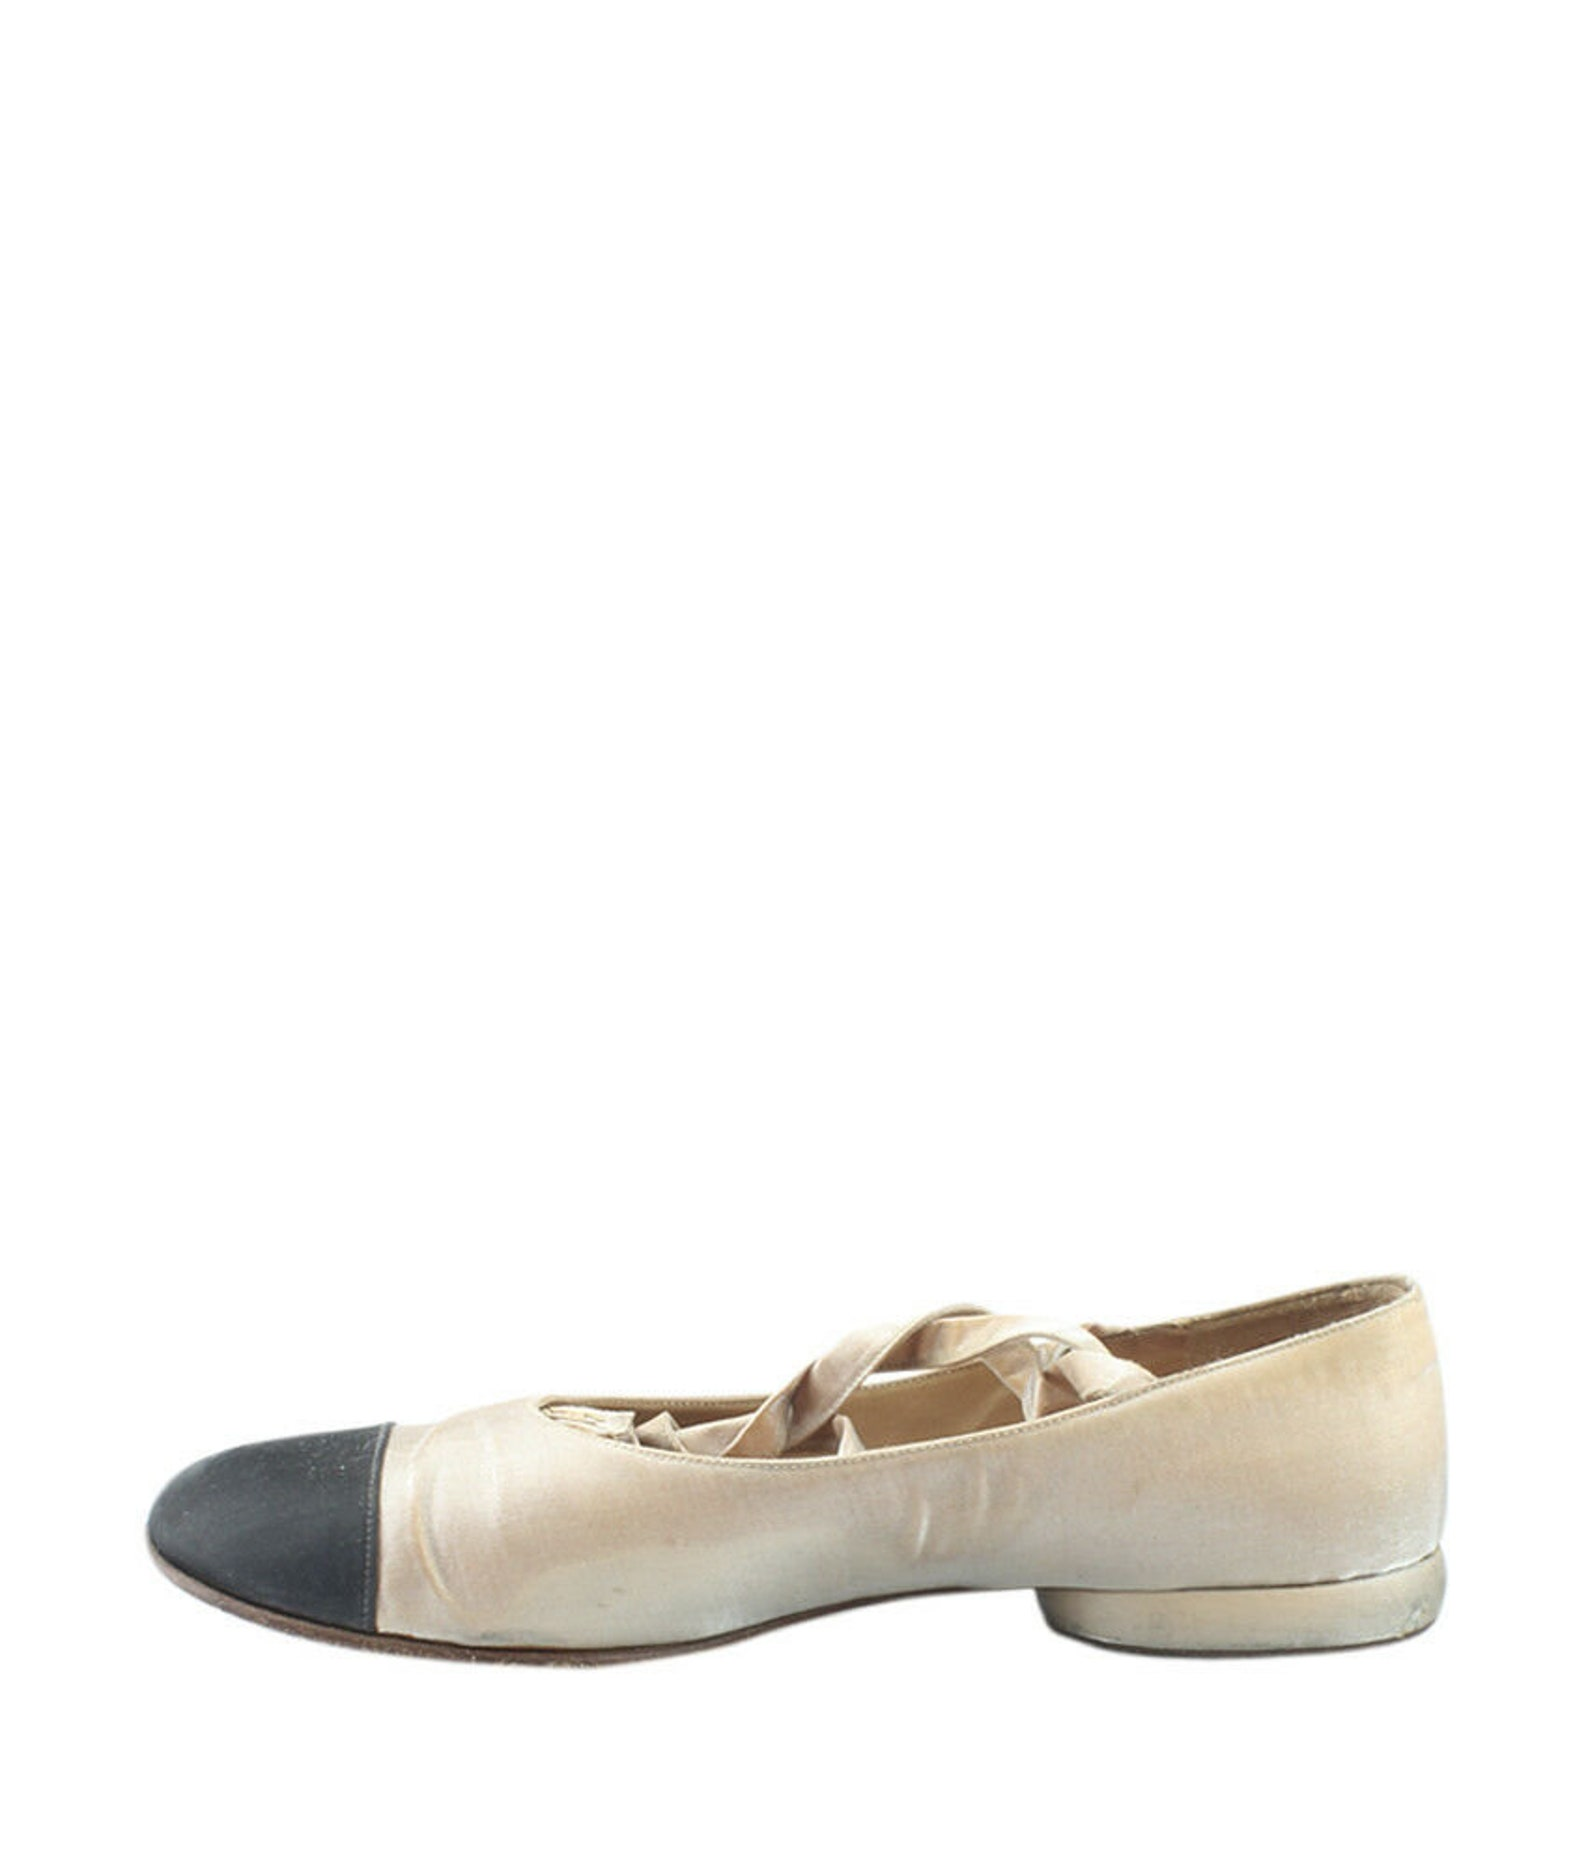 chanel ballet flats cap toe with ankle straps